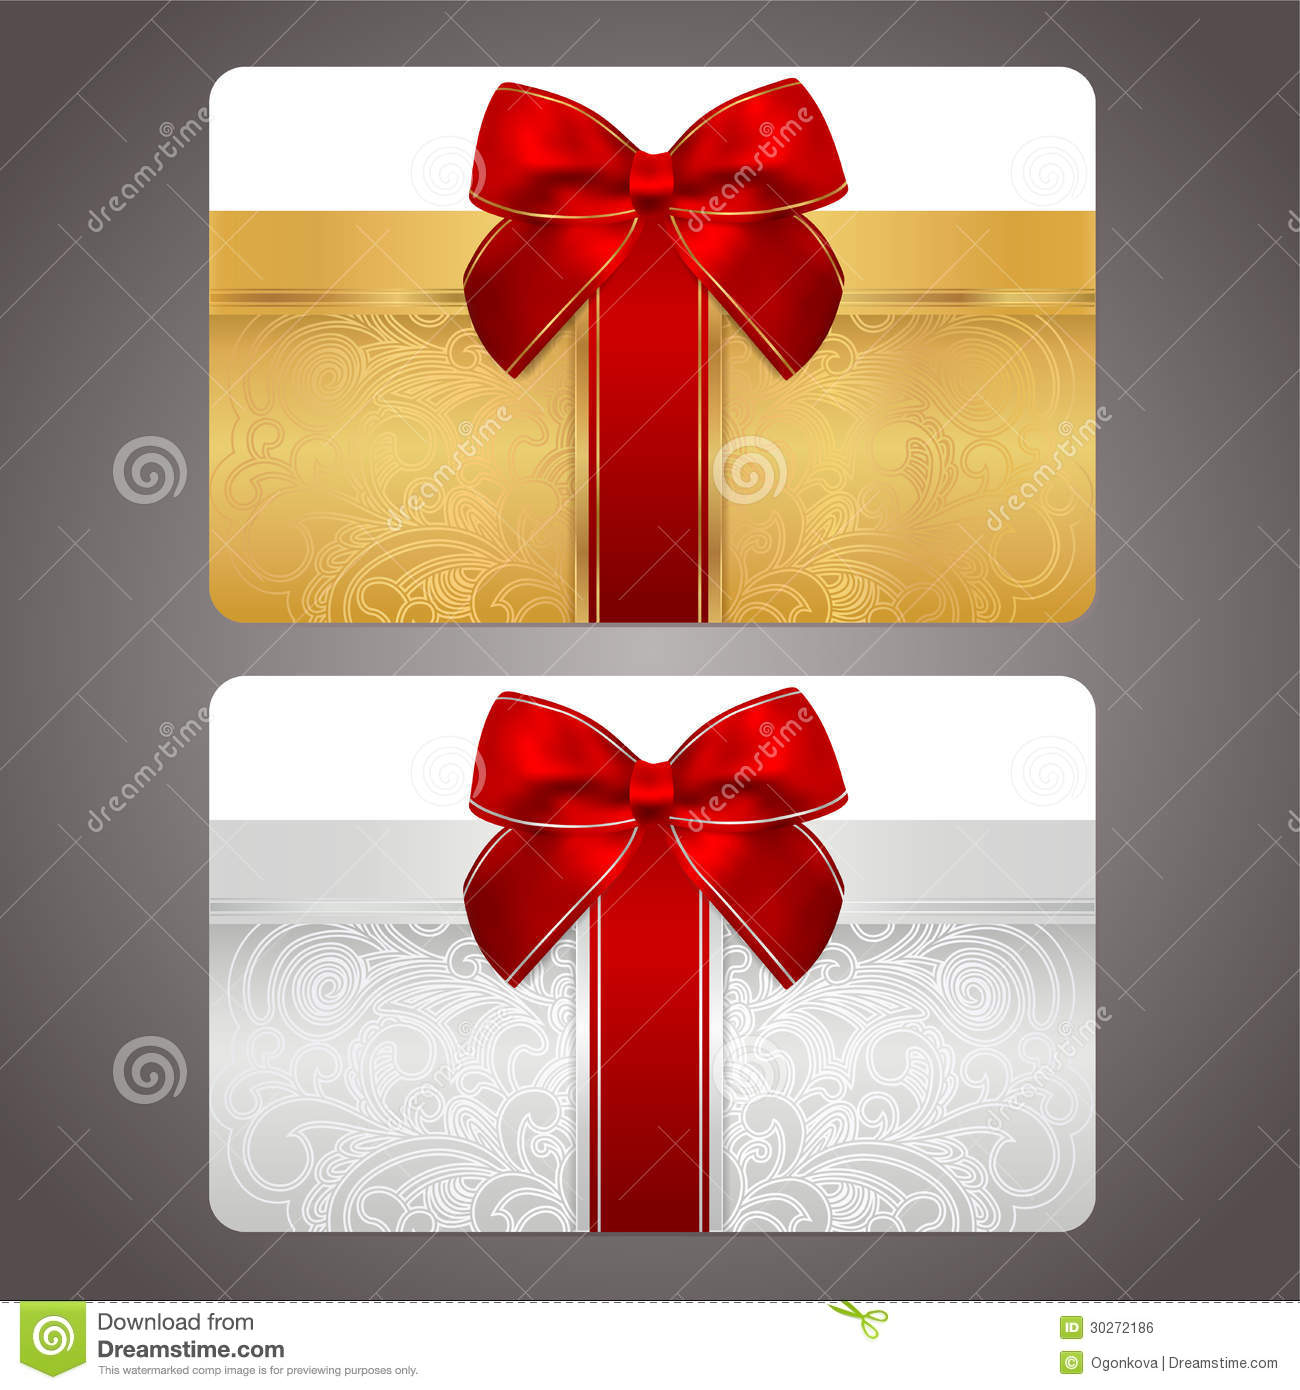 Design of discount card - Golden And Silver Gift Card With Red Bow Ribbons Royalty Free Stock Image